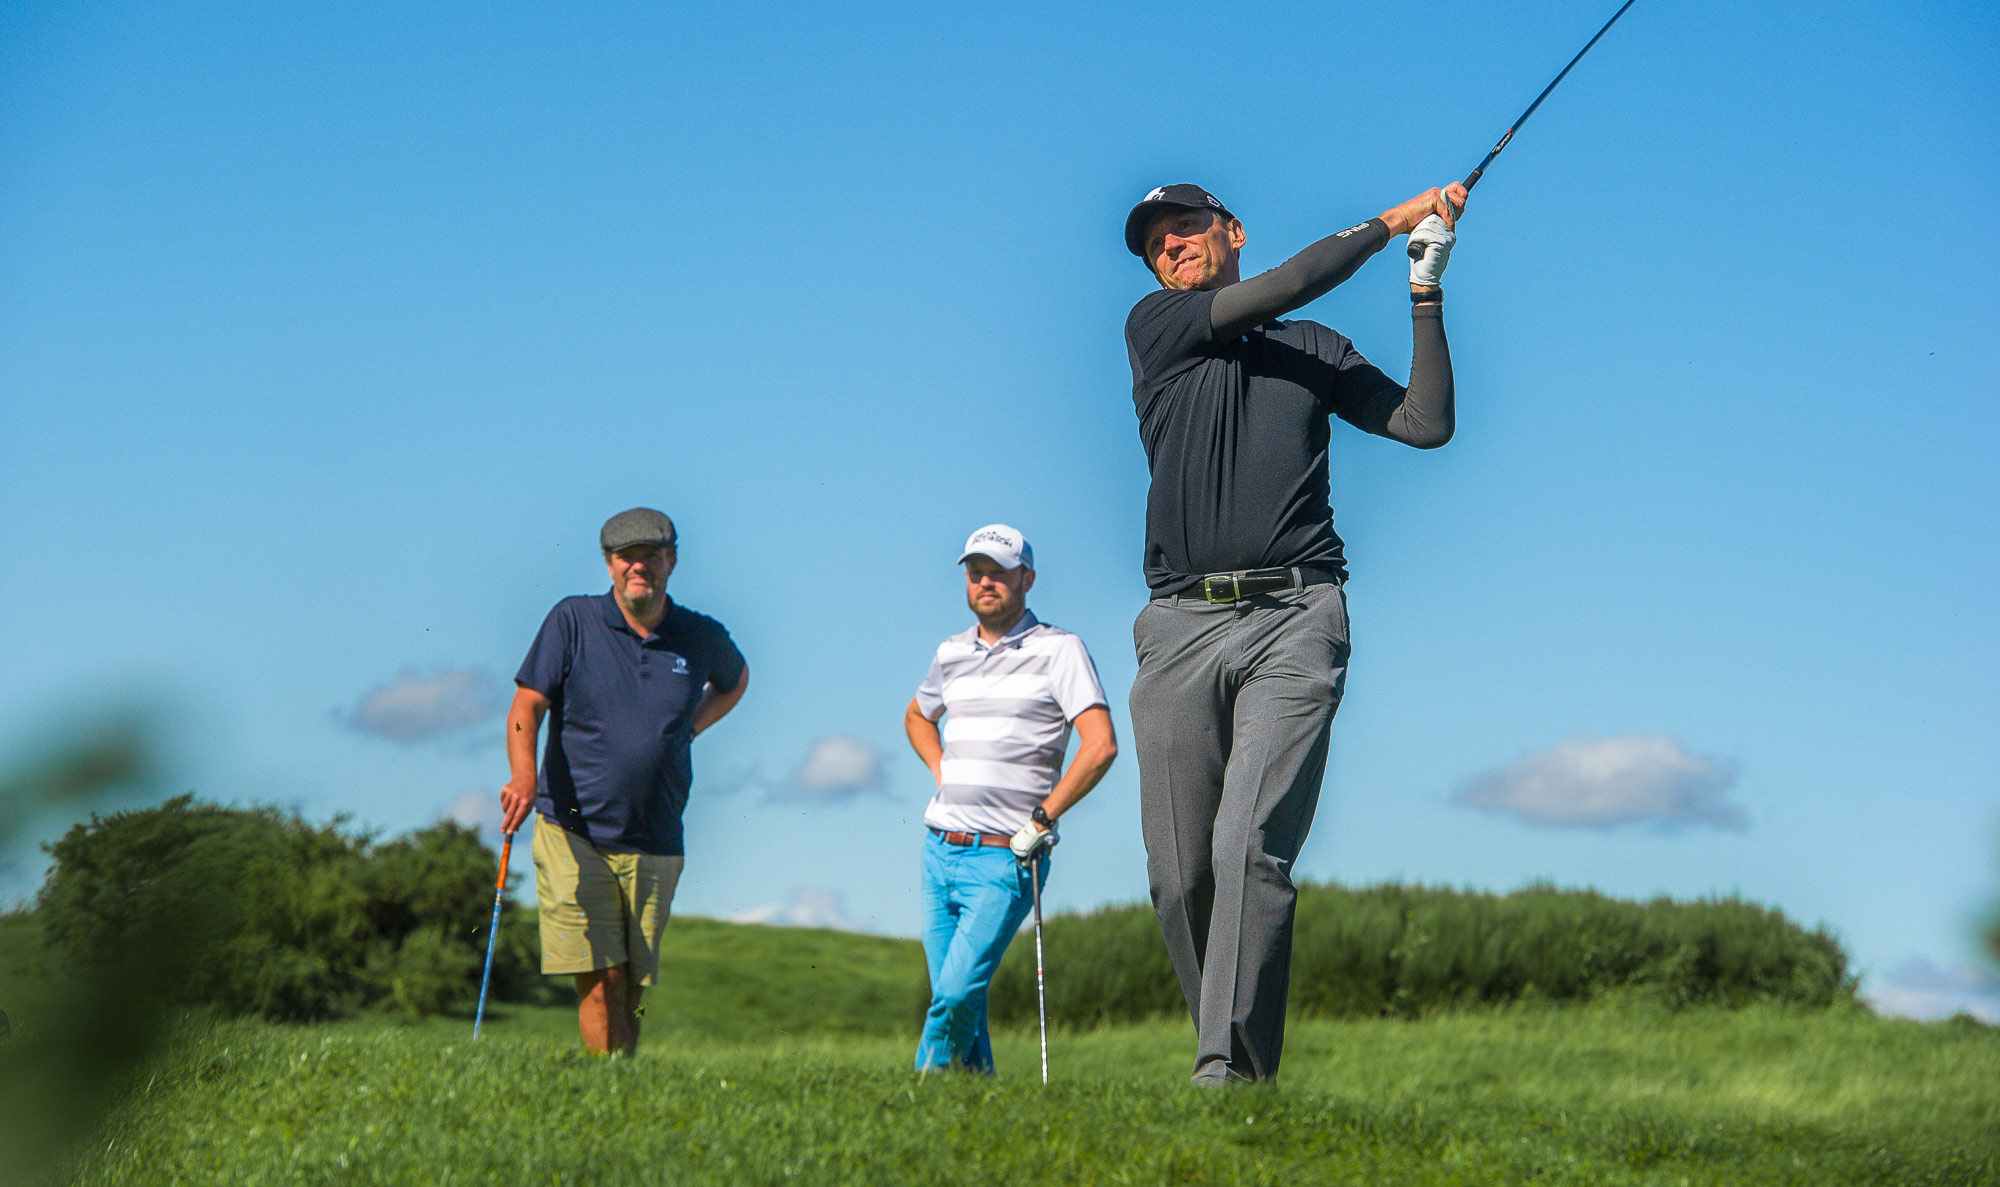 Bespoke Golf Days at the Shire London